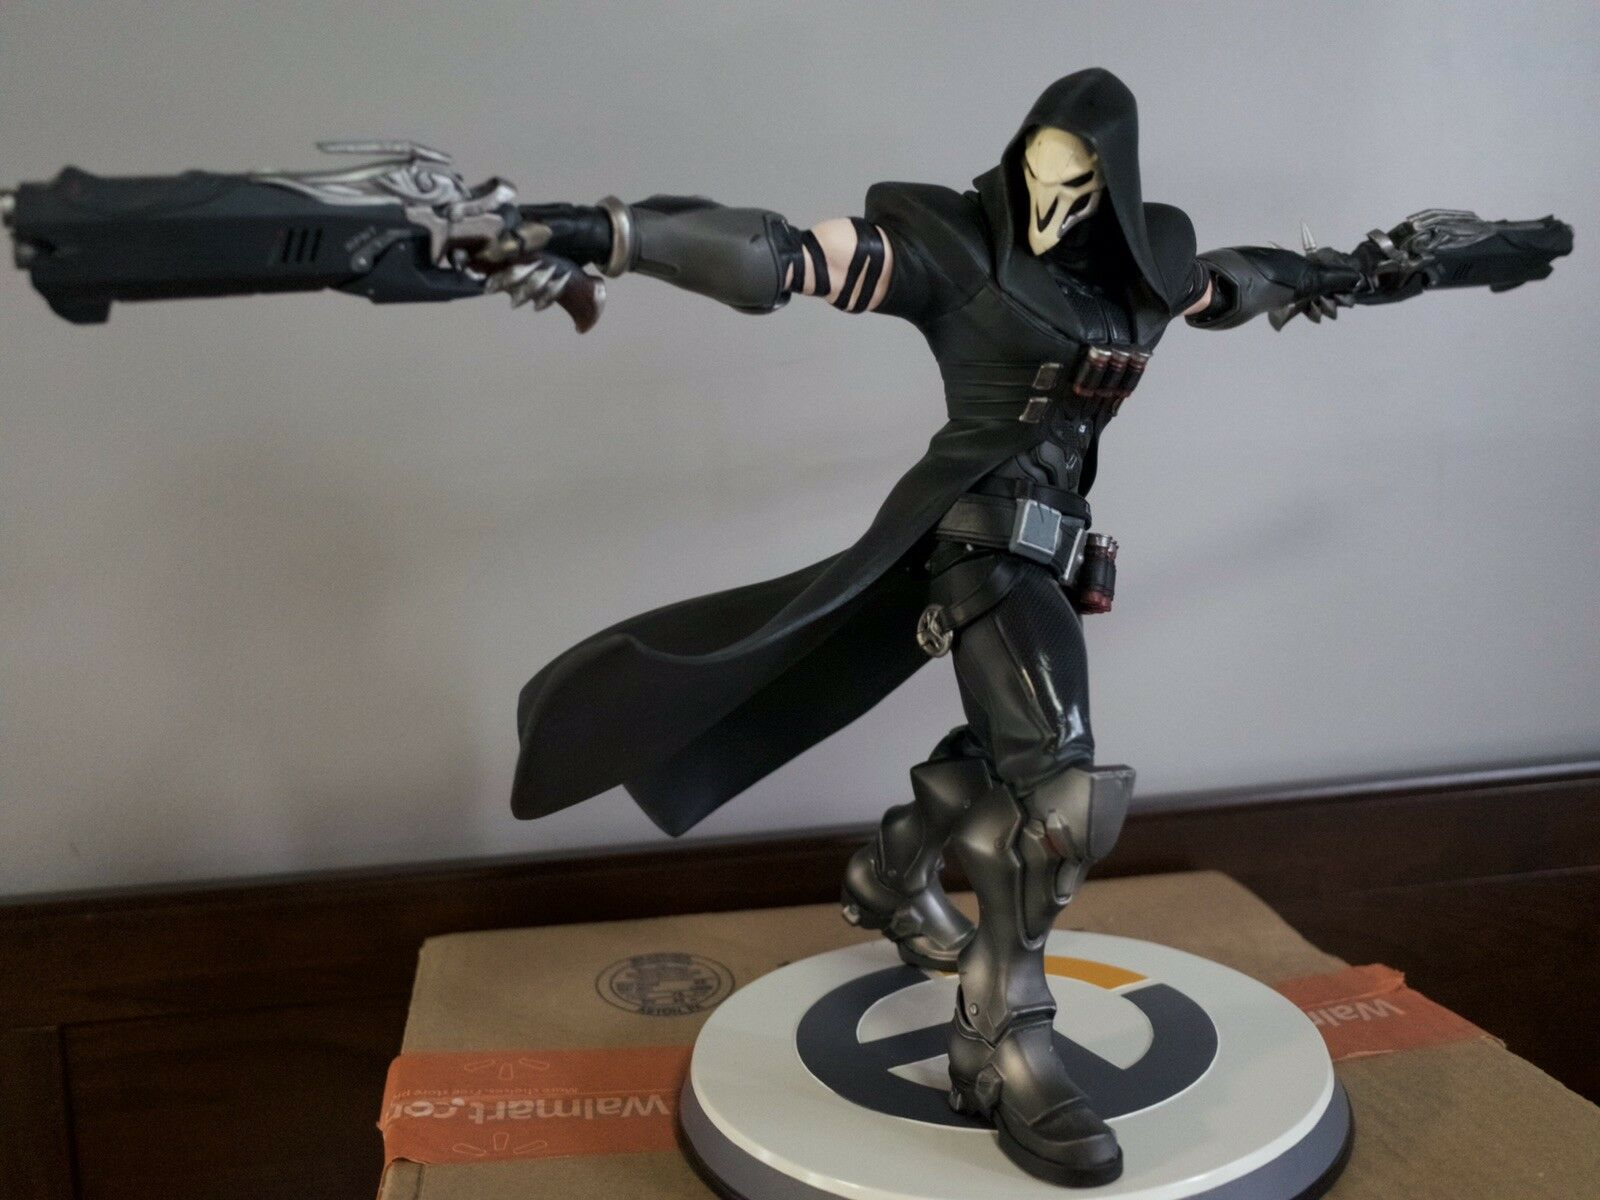 Blizzard Overwatch Reaper 12  Statue Wave 1 of 5000 Authentic Opened Box